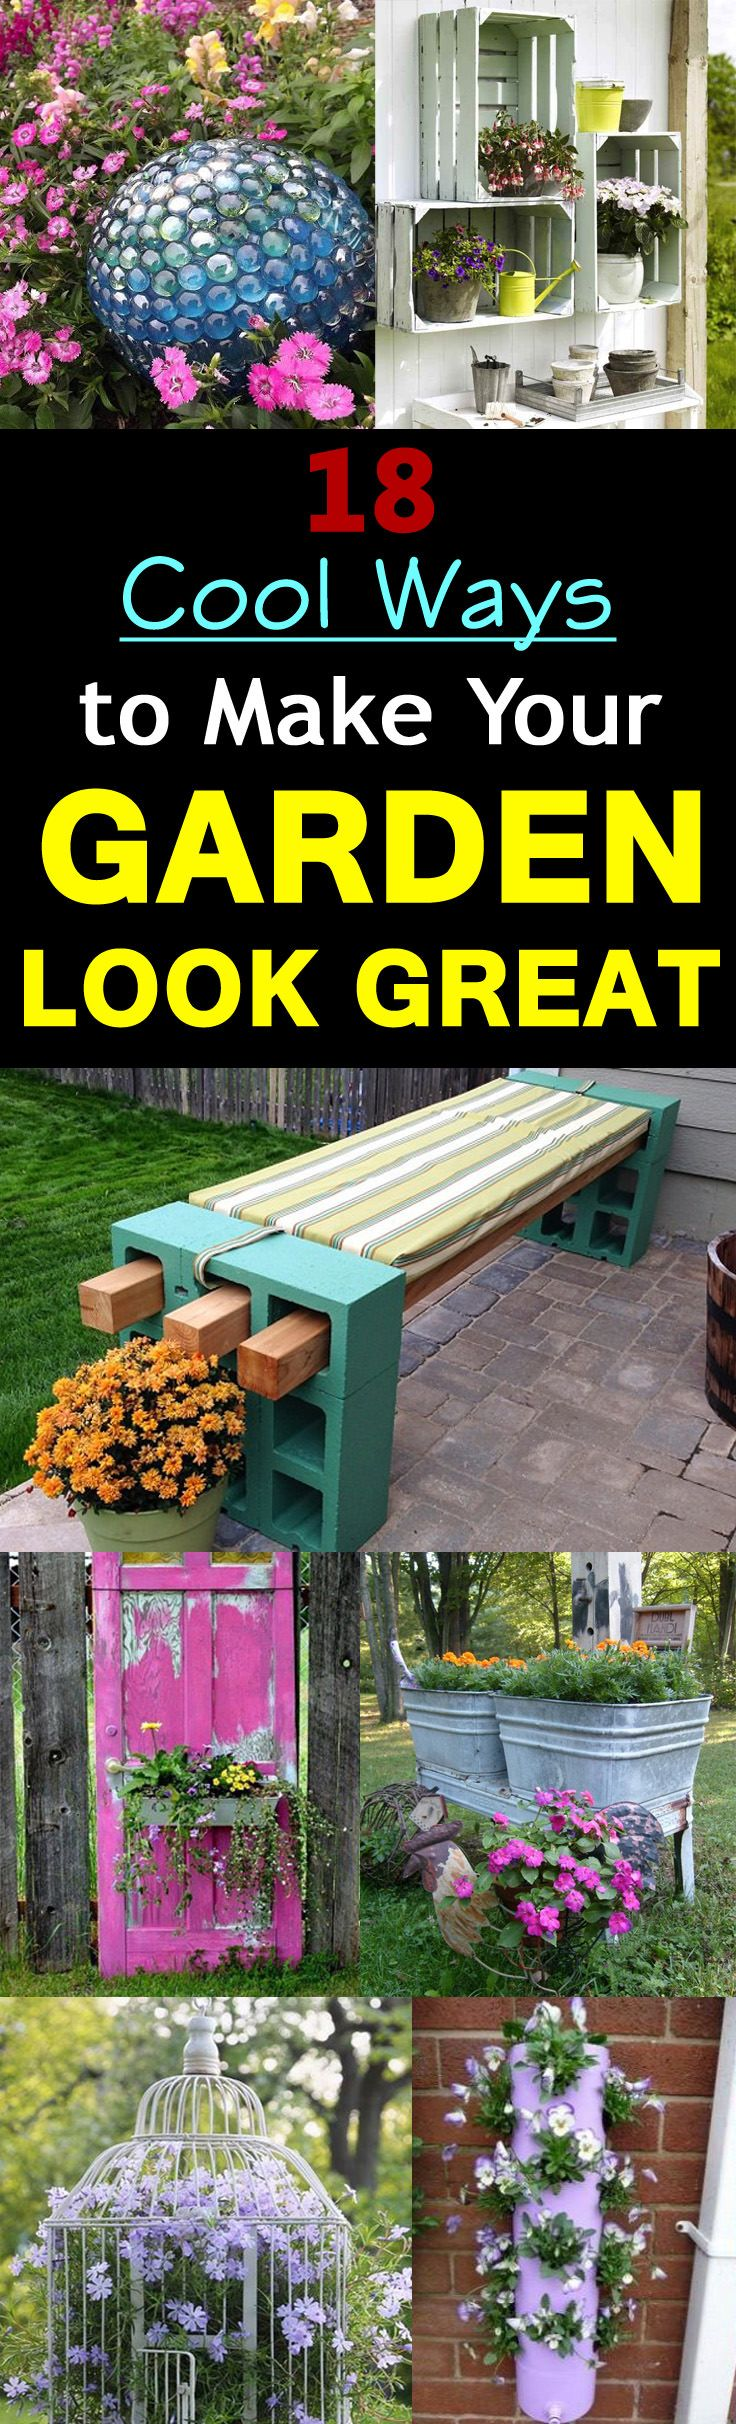 Pin On Best Of Home And Garden 400 x 300